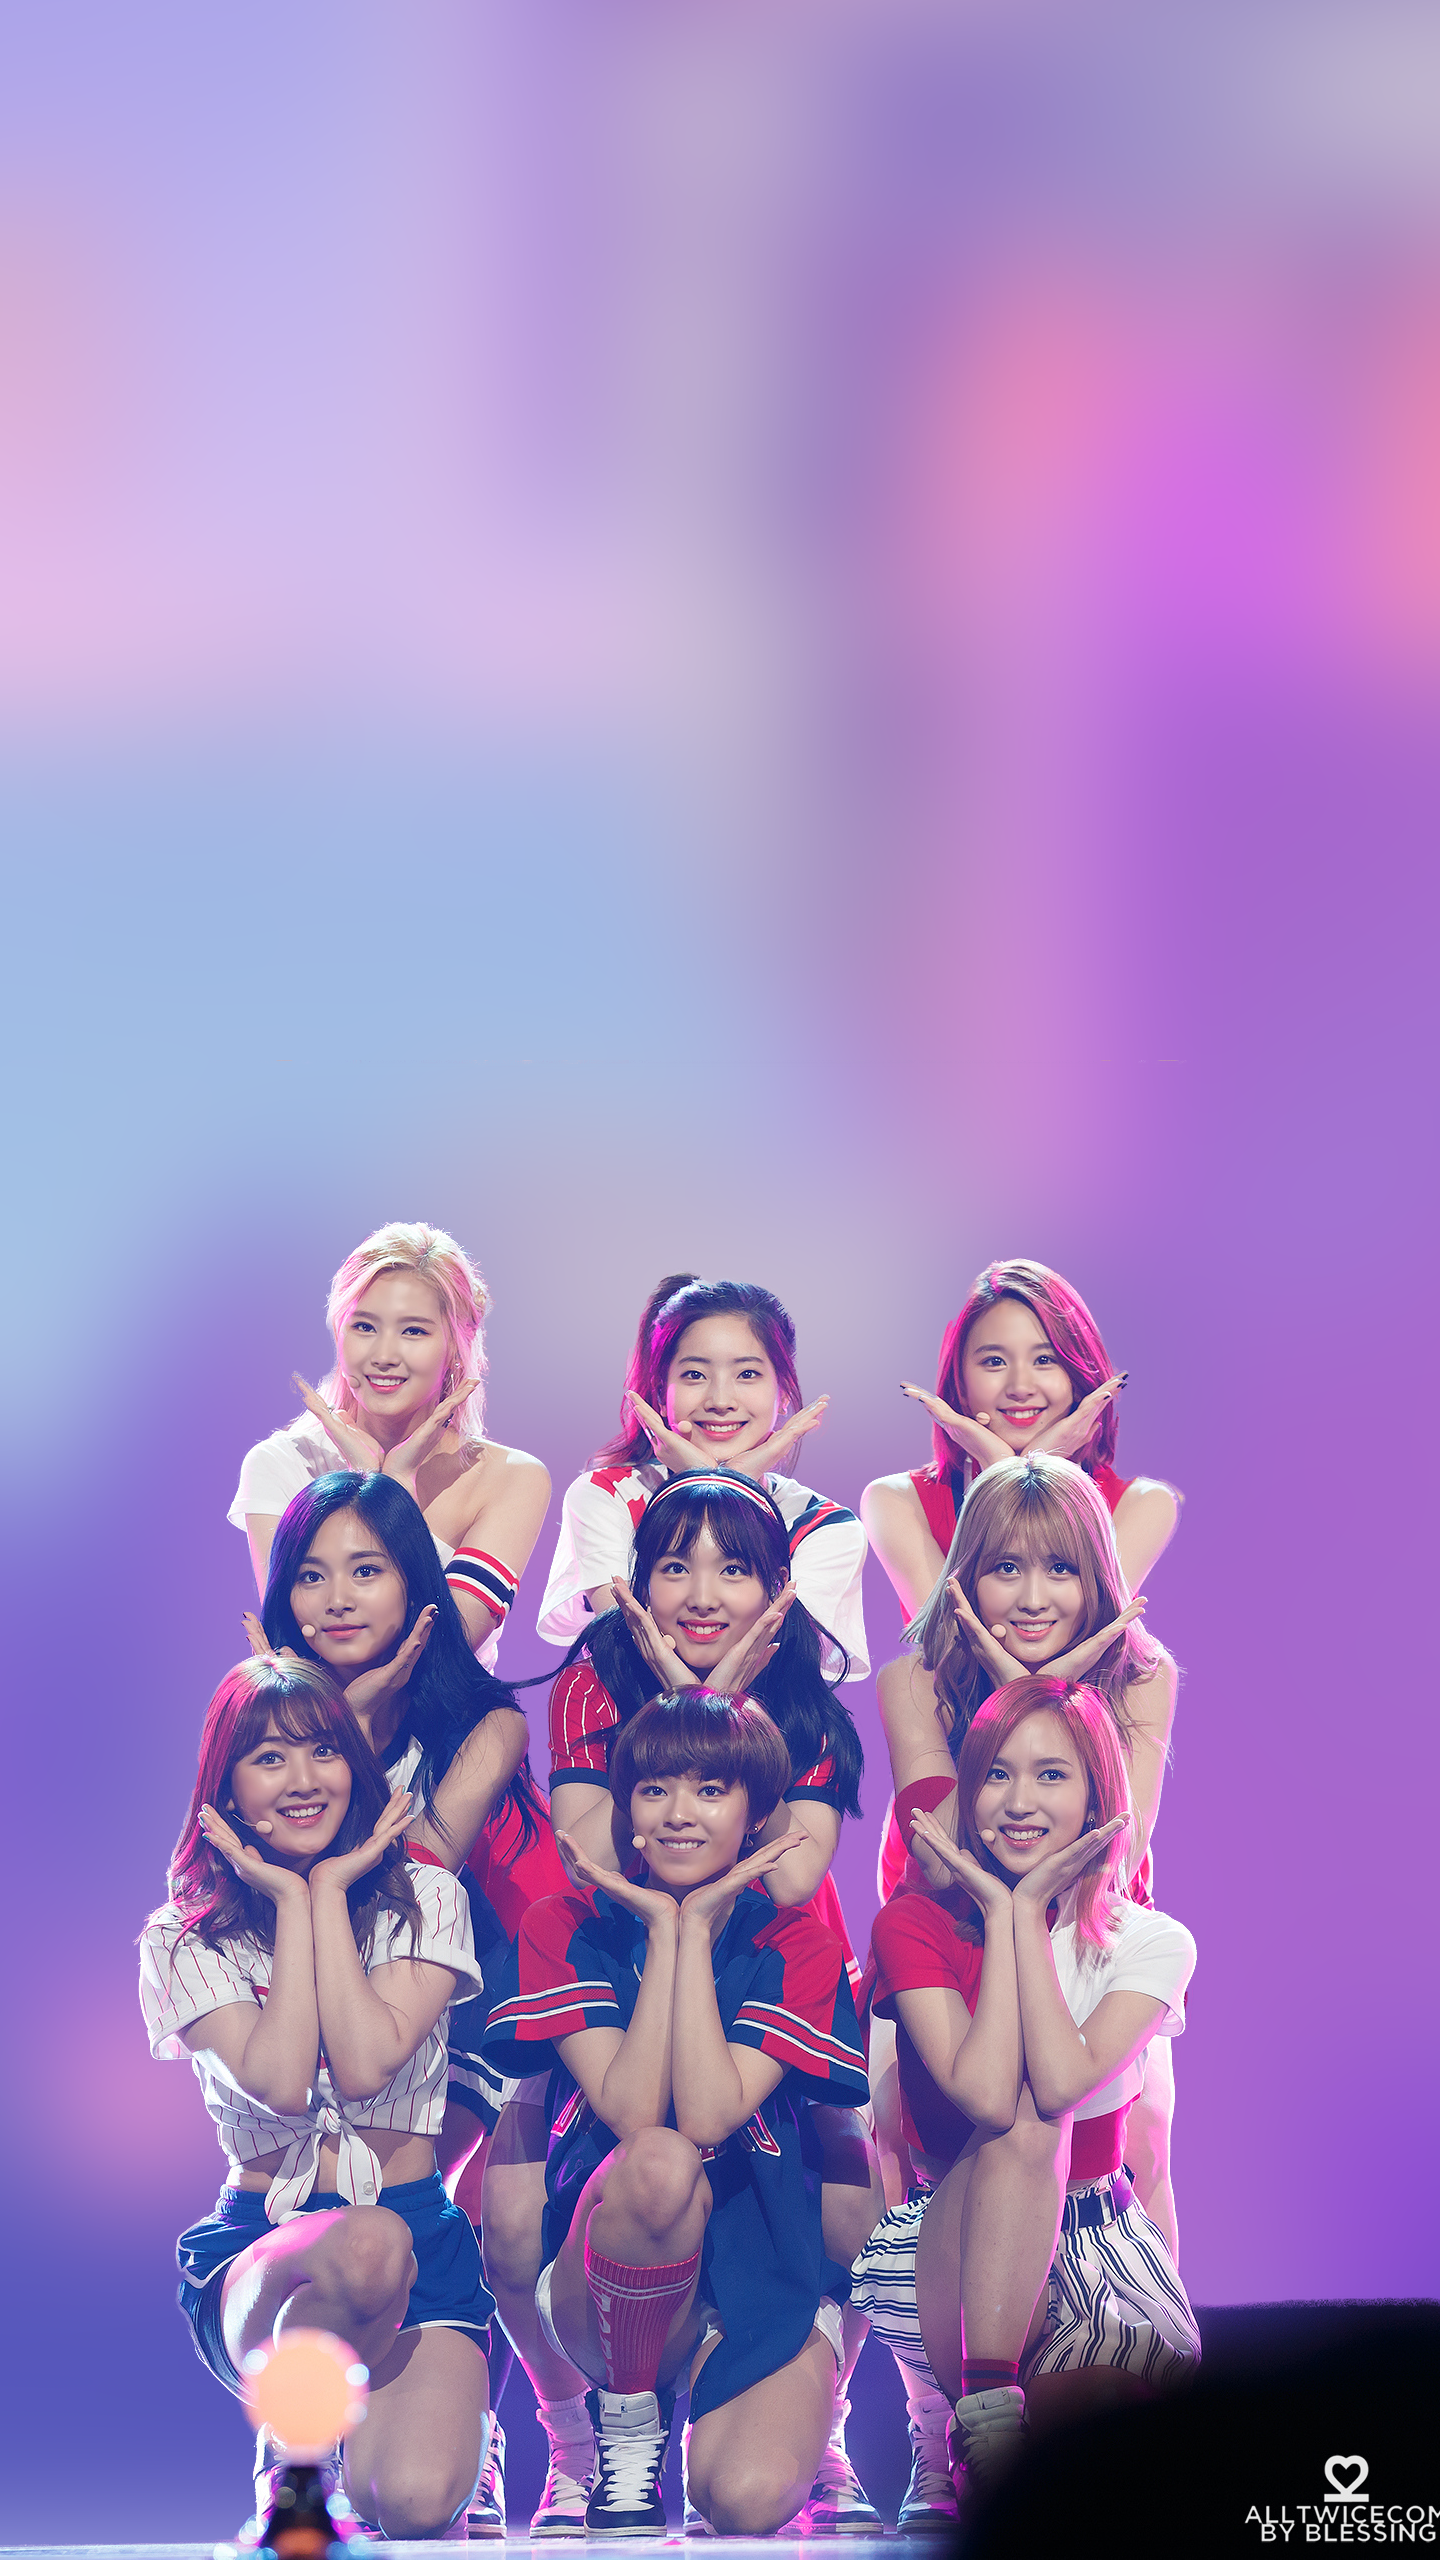 TWICE Cheer Up Twice wallpaper, Twice